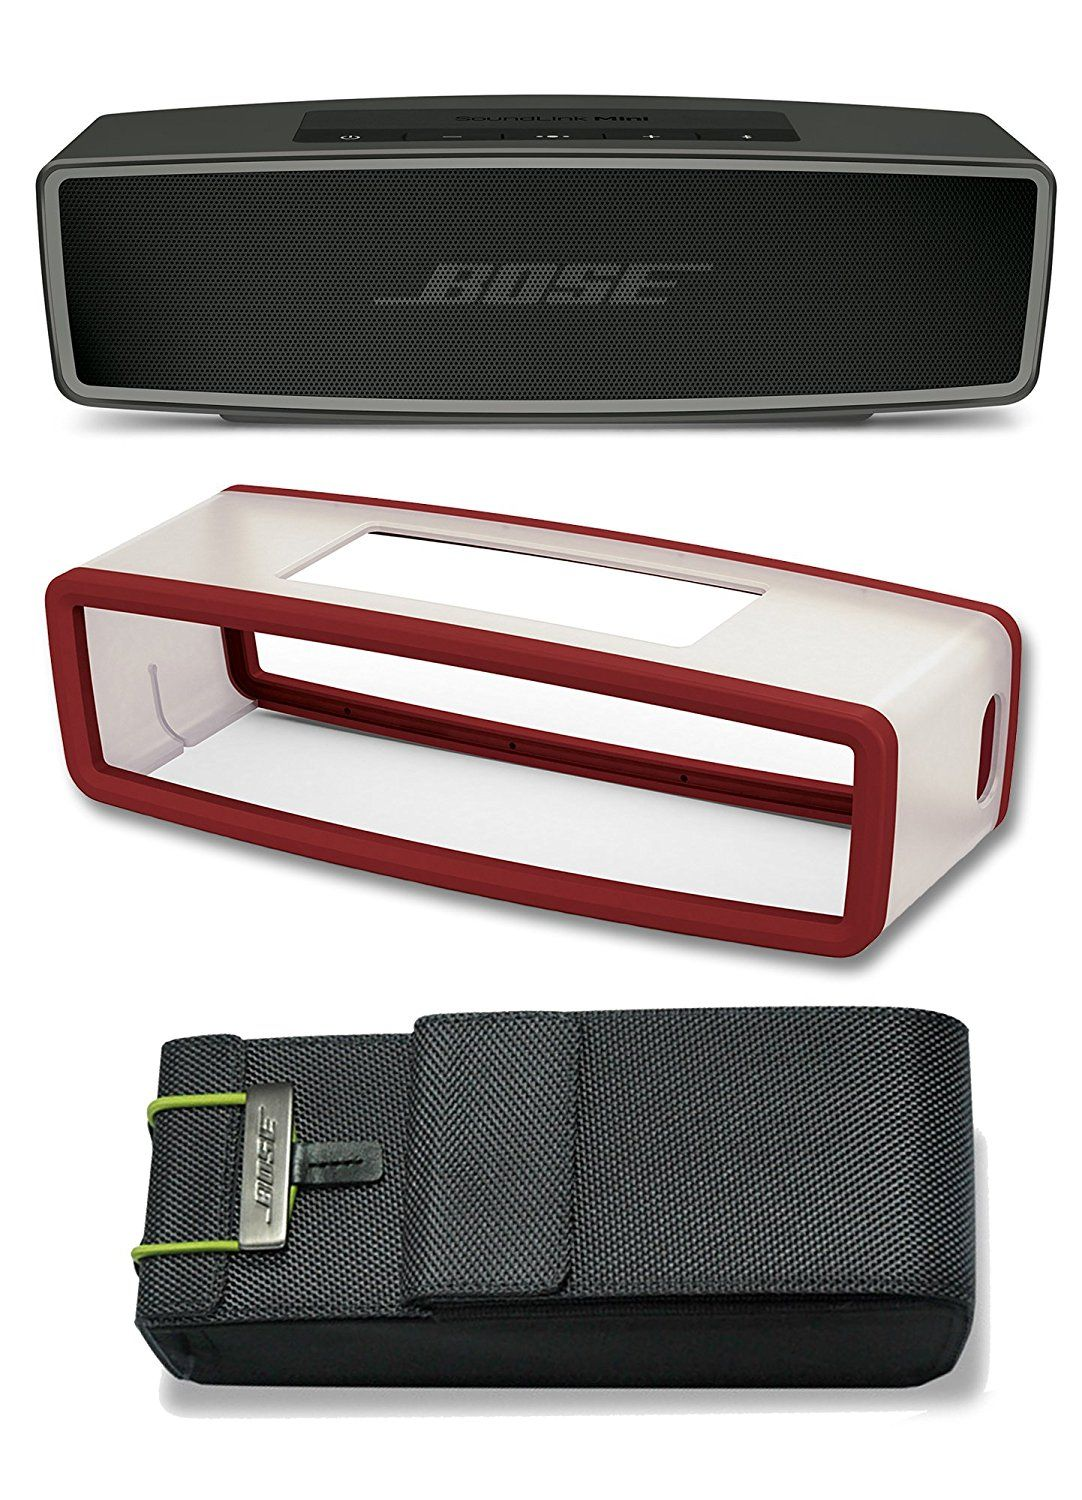 Bose Soundlink Mini Ii Carbon Bluetooth Speaker Bundle With Deep Red Travel Bag Cover And